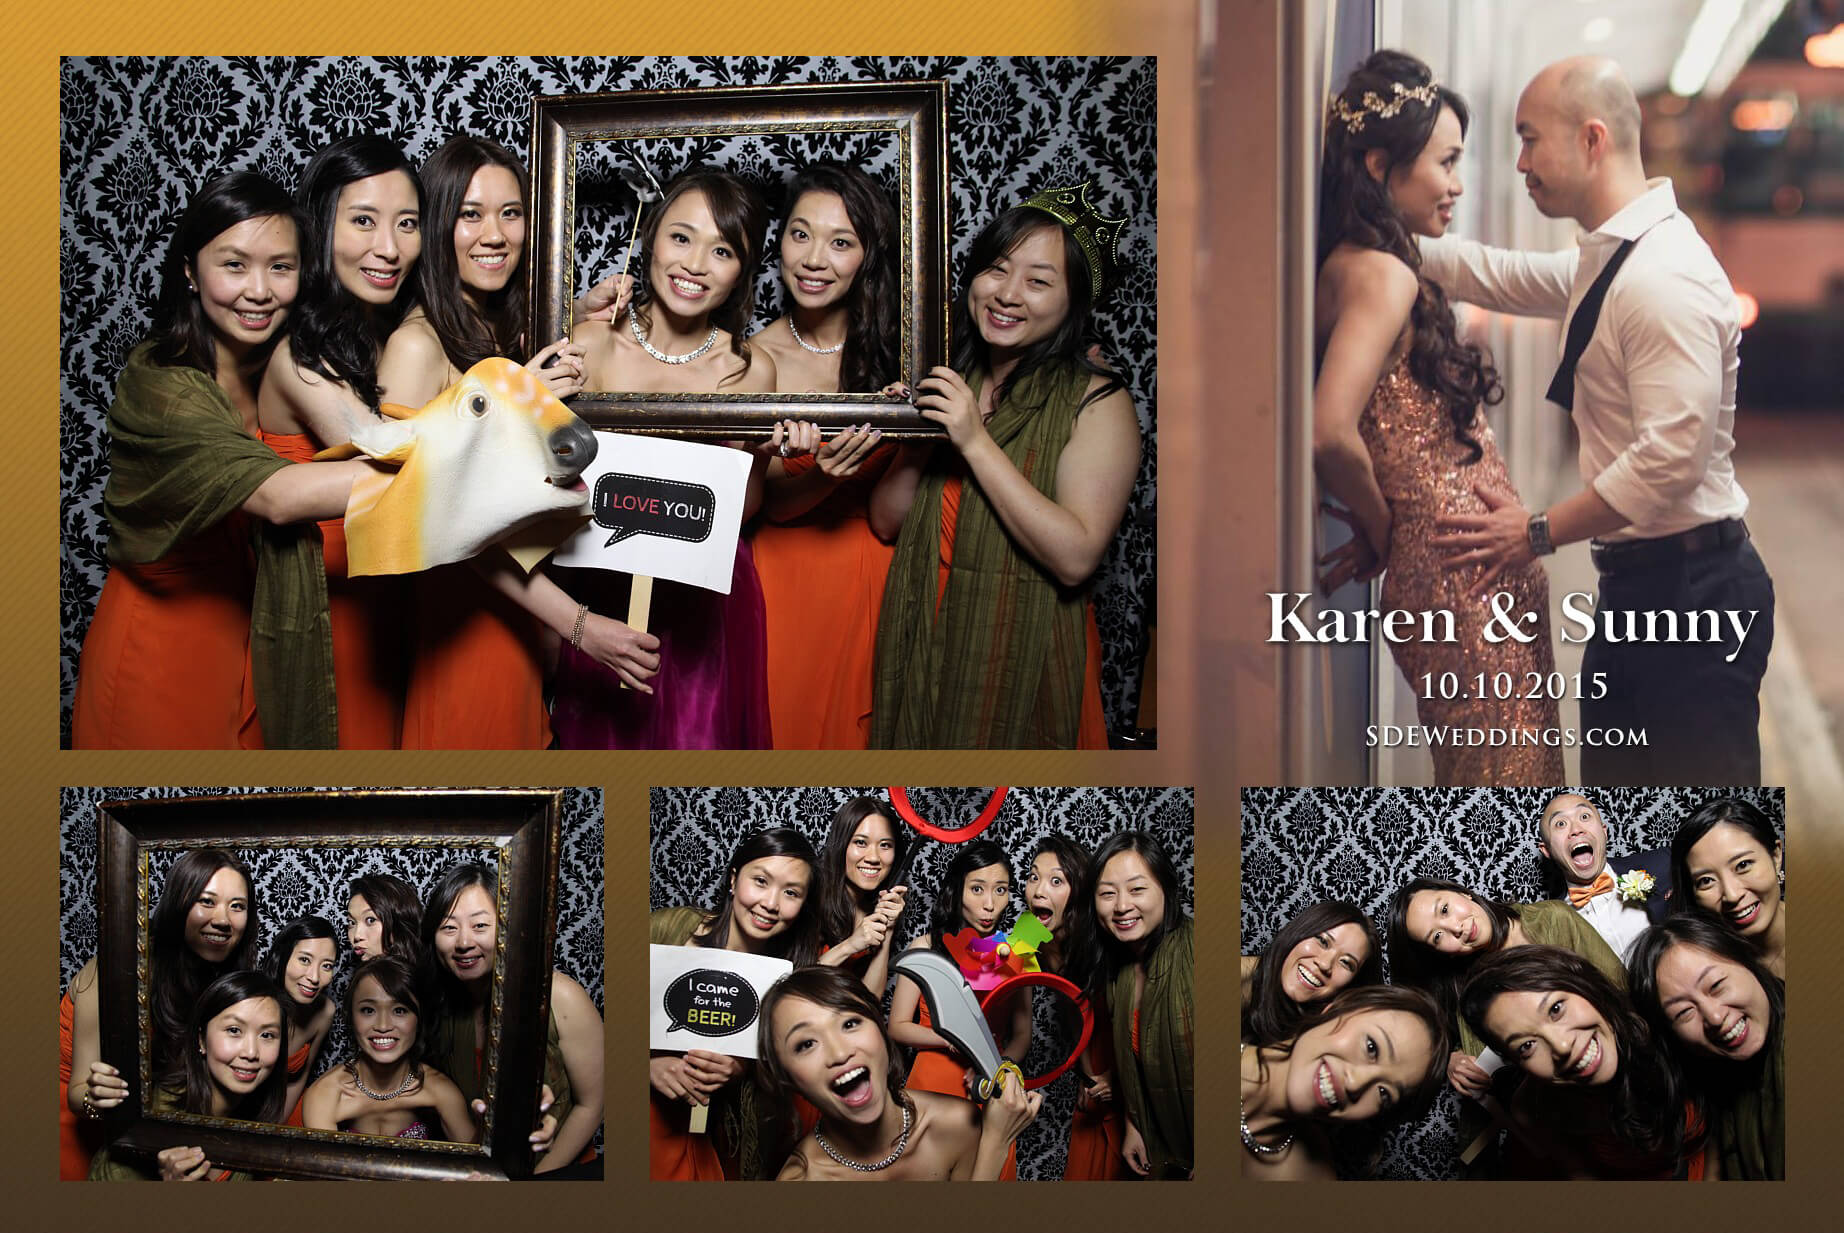 Toronto Fantasy Farm Wedding Photo Booth Rental 6